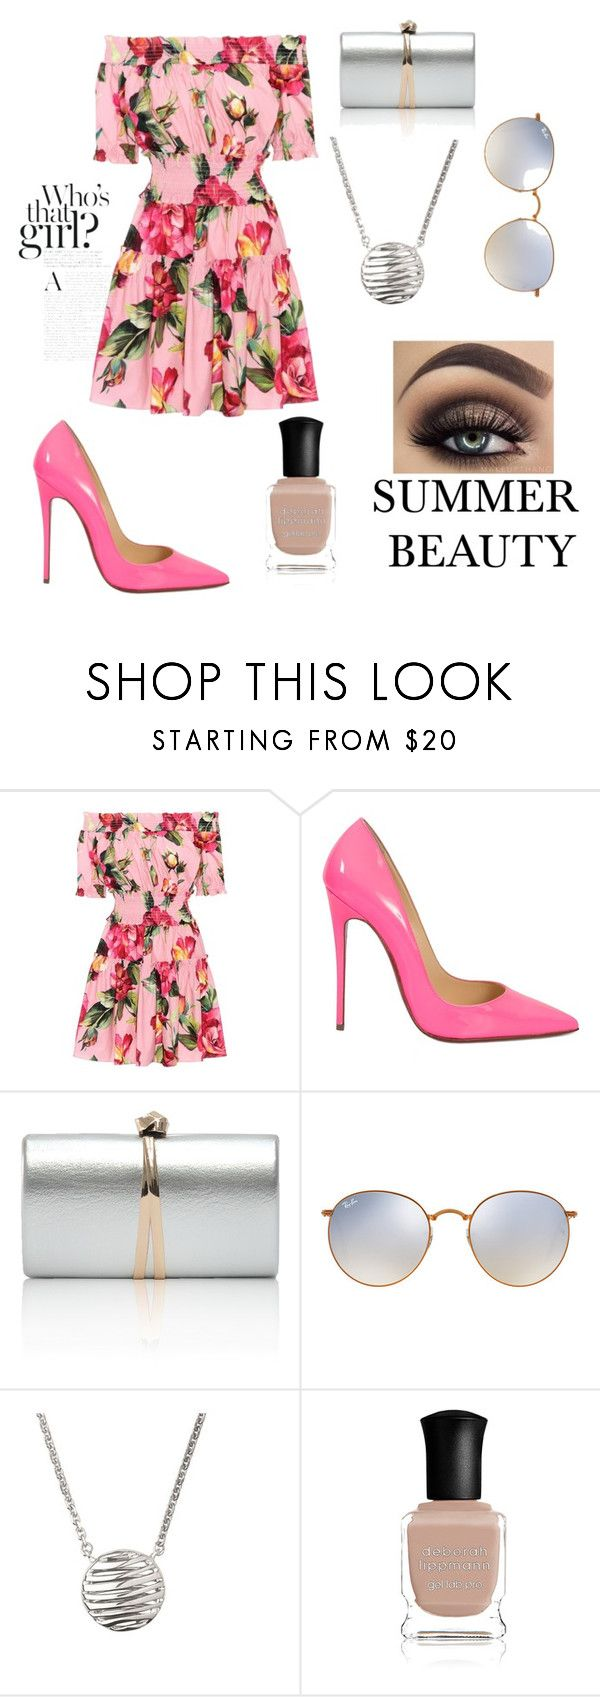 """Summer Beauty Aphrodite Cabin"" by ambermcdevitt ❤ liked on Polyvore featuring Dolce&Gabbana, Christian Louboutin, Ray-Ban, Links of London and Deborah Lippmann"